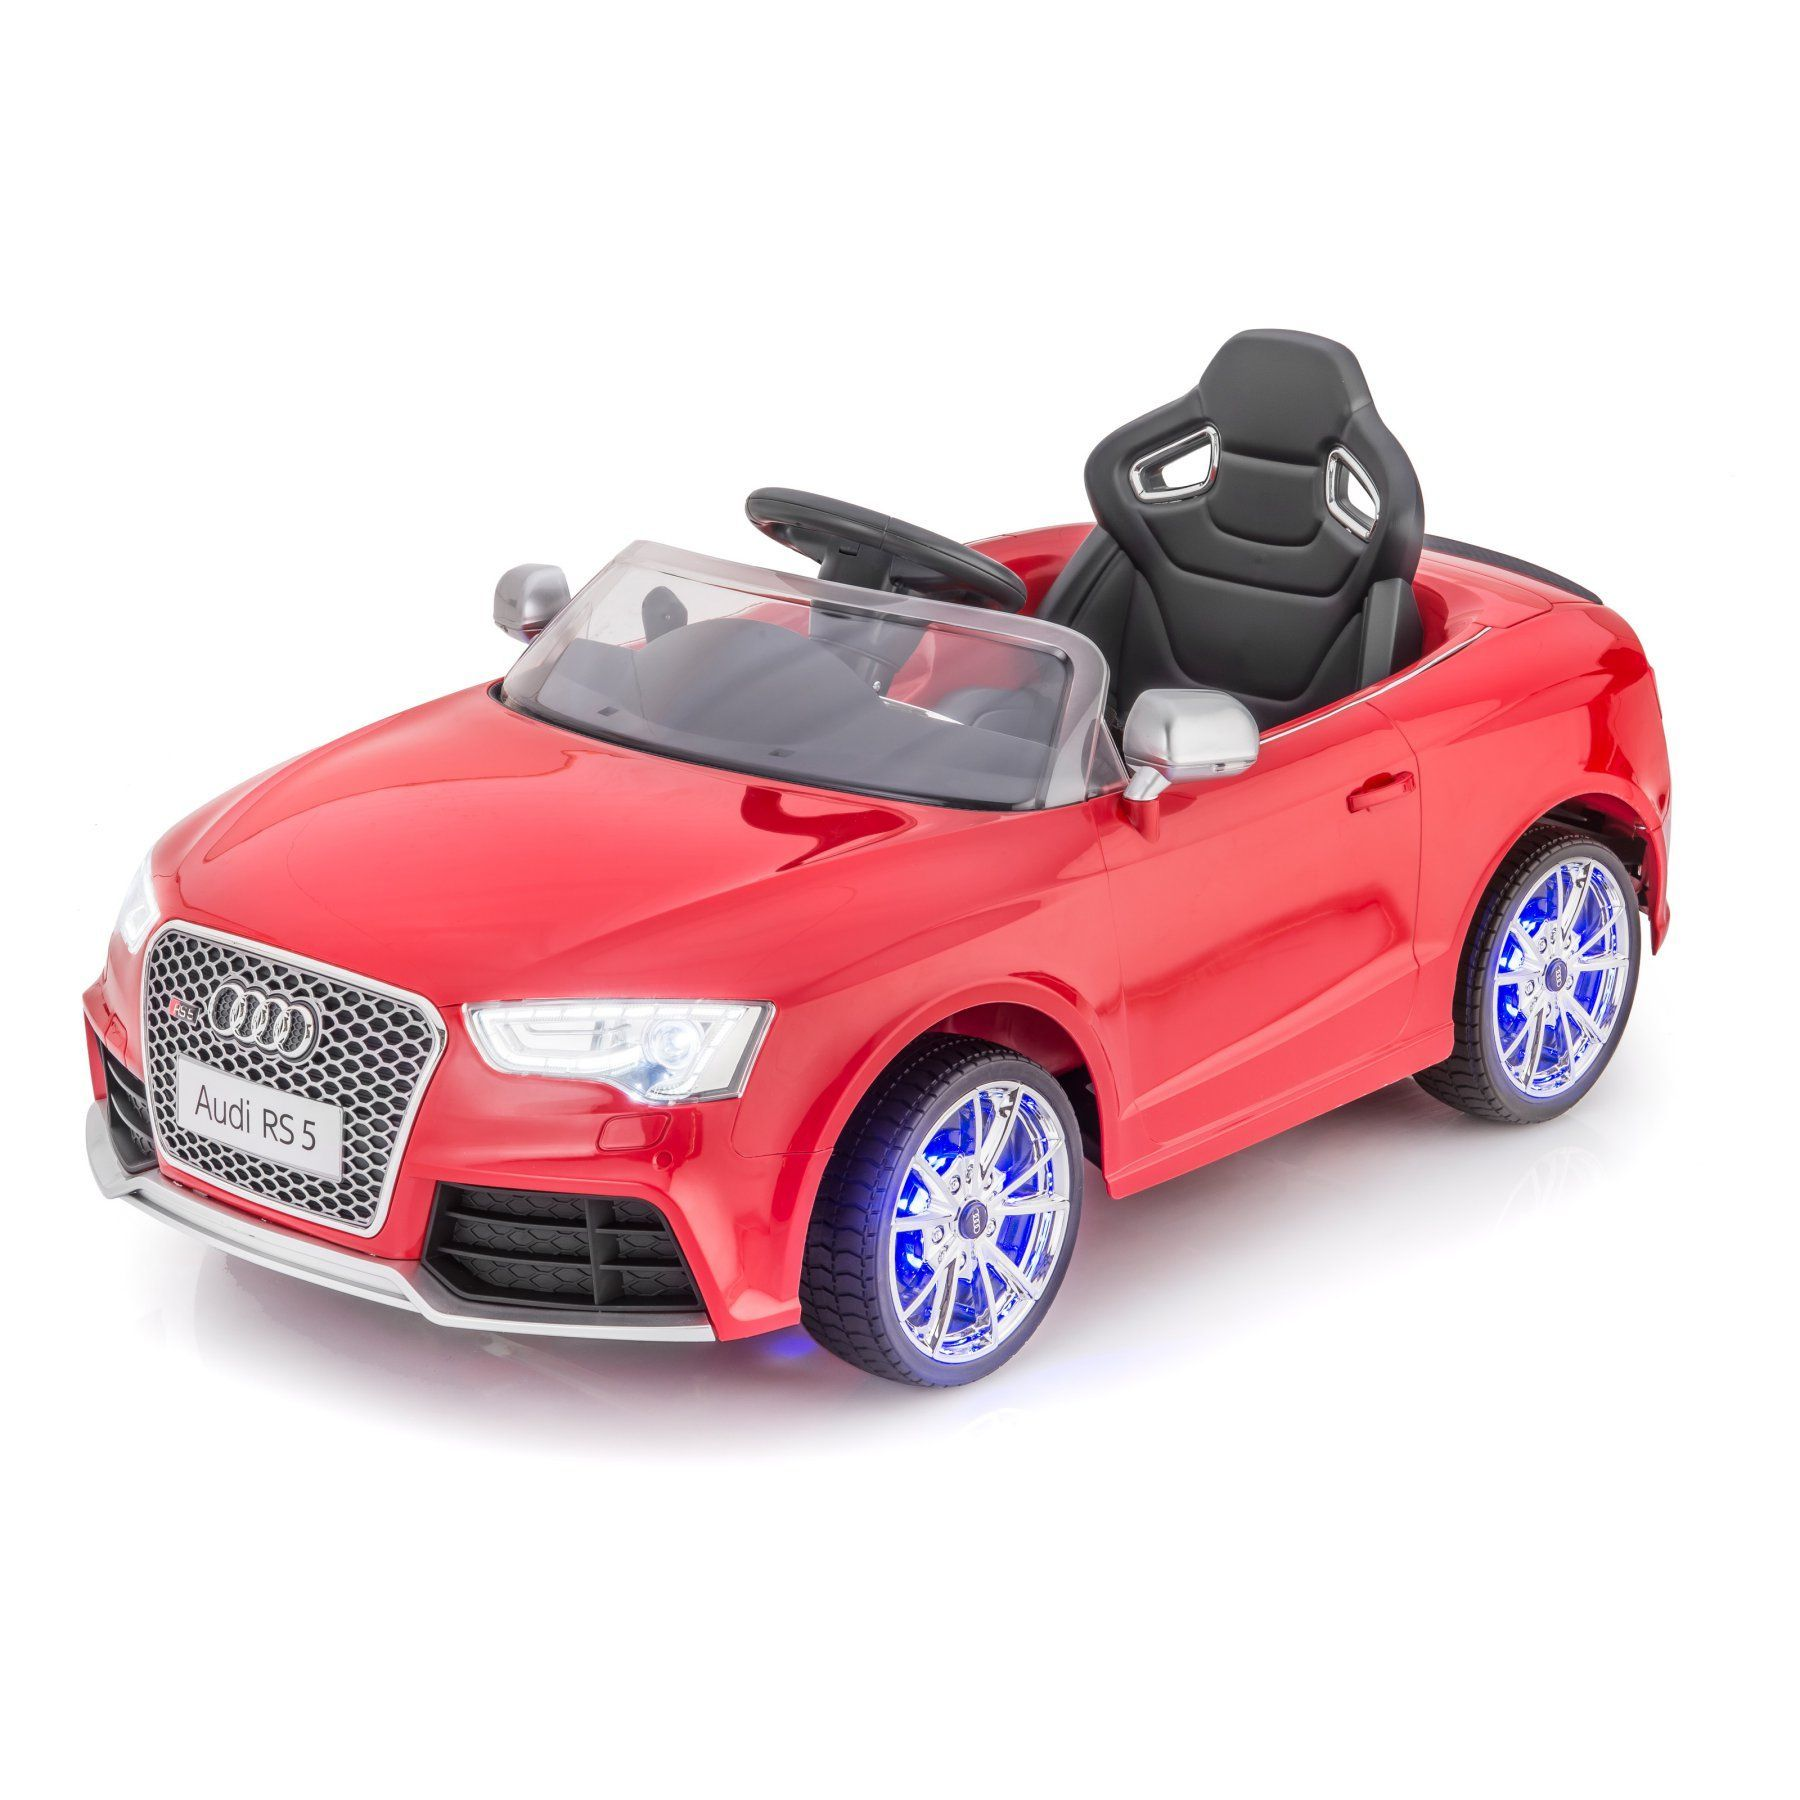 SPORTrax Licensed Audi RS5 Battery Powered Riding Toy with